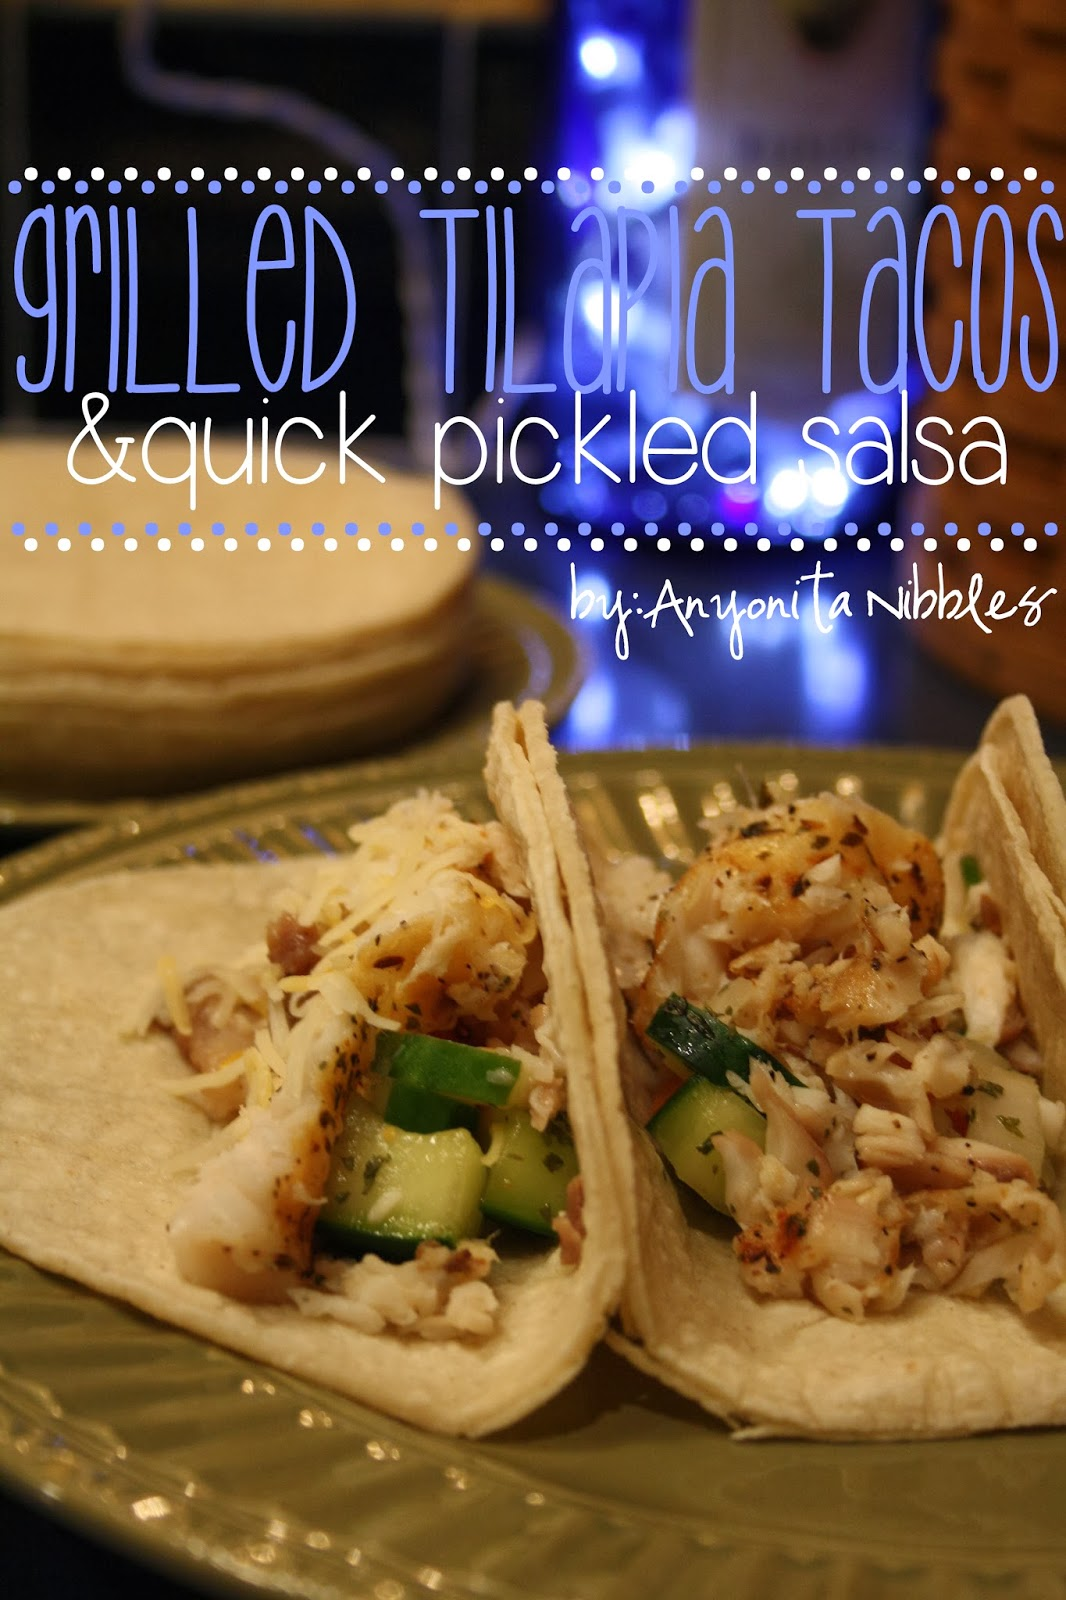 Grilled Tilapia Tacos with Quick Pickled Salsa makes a perfect weeknight dinner with that fresh Baja taste! From www.anyonita-nibbles.com